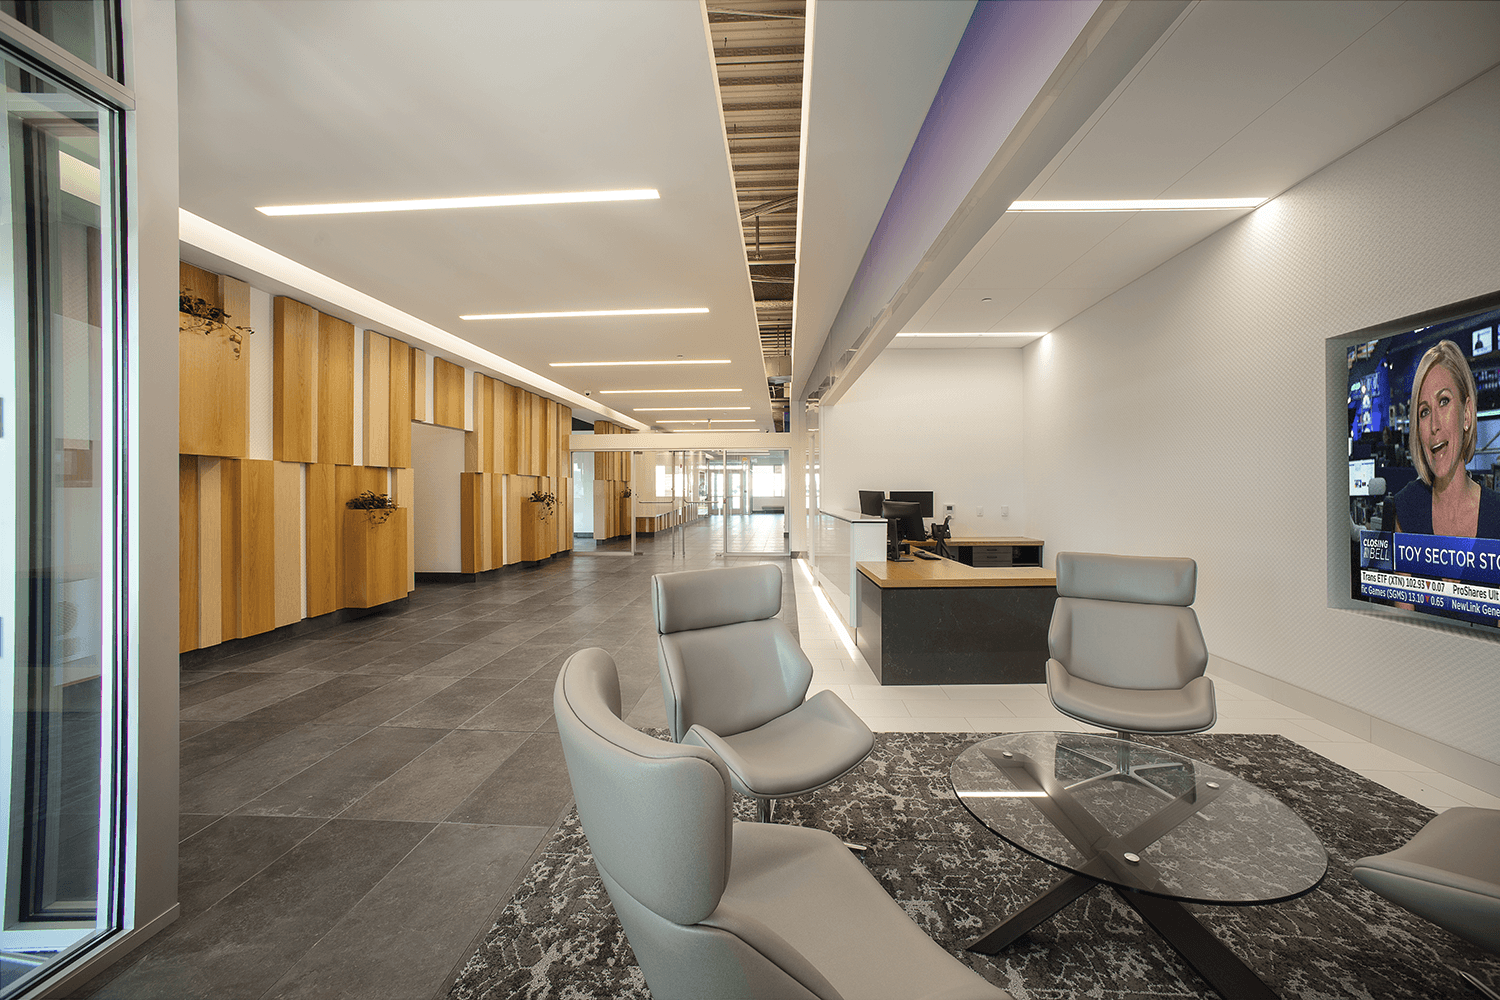 chairs around a coffee table in a lobby and reception area